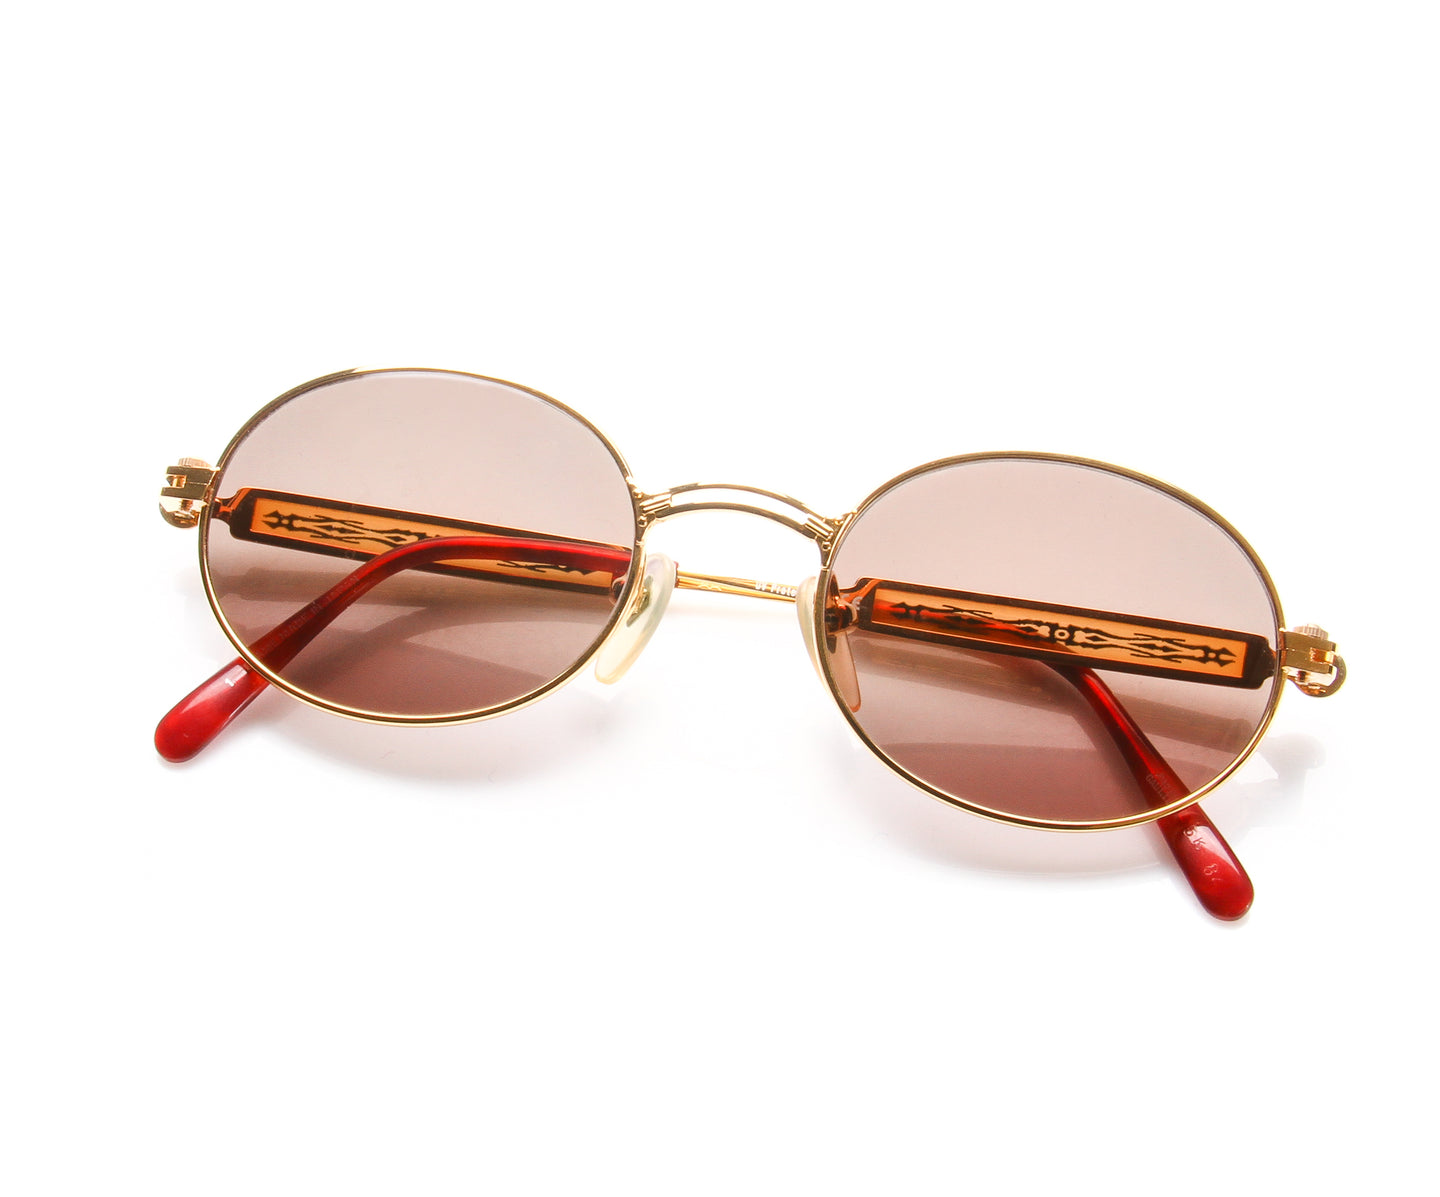 Jean Paul Gaultier 56 4170 1, Jean Paul Gaultier , glasses frames, eyeglasses online, eyeglass frames, mens glasses, womens glasses, buy glasses online, designer eyeglasses, vintage sunglasses, retro sunglasses, vintage glasses, sunglass, eyeglass, glasses, lens, vintage frames company, vf